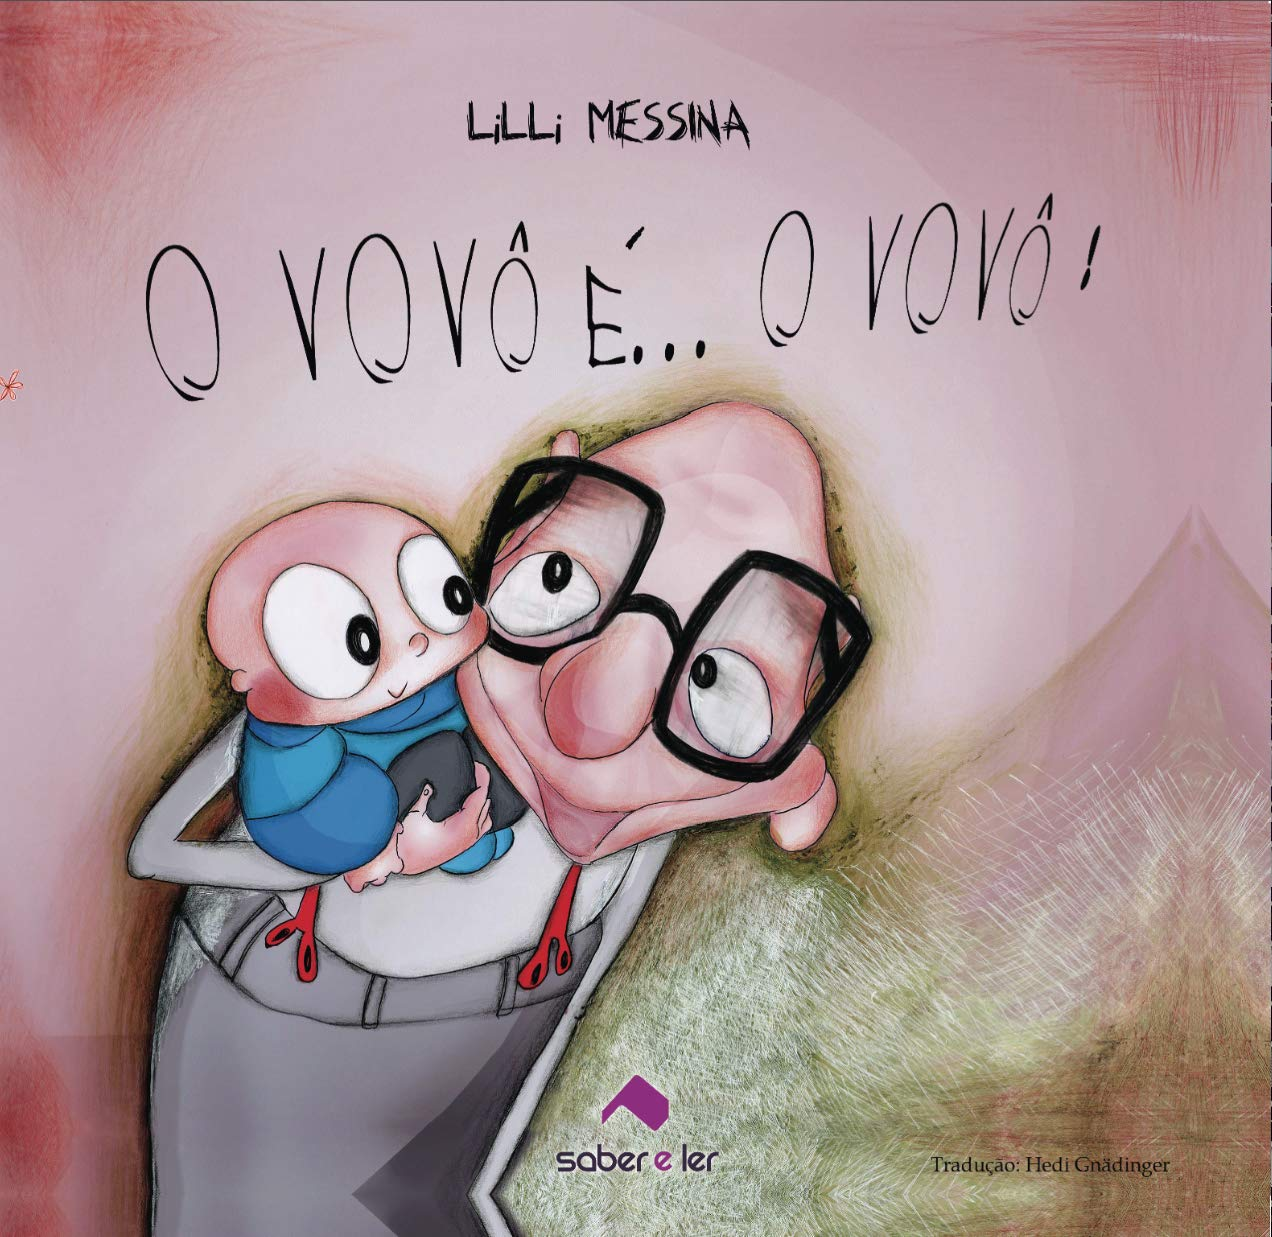 Vovô e ... O vovô!: Lilli Messina: 9788566428001: Amazon.com ...